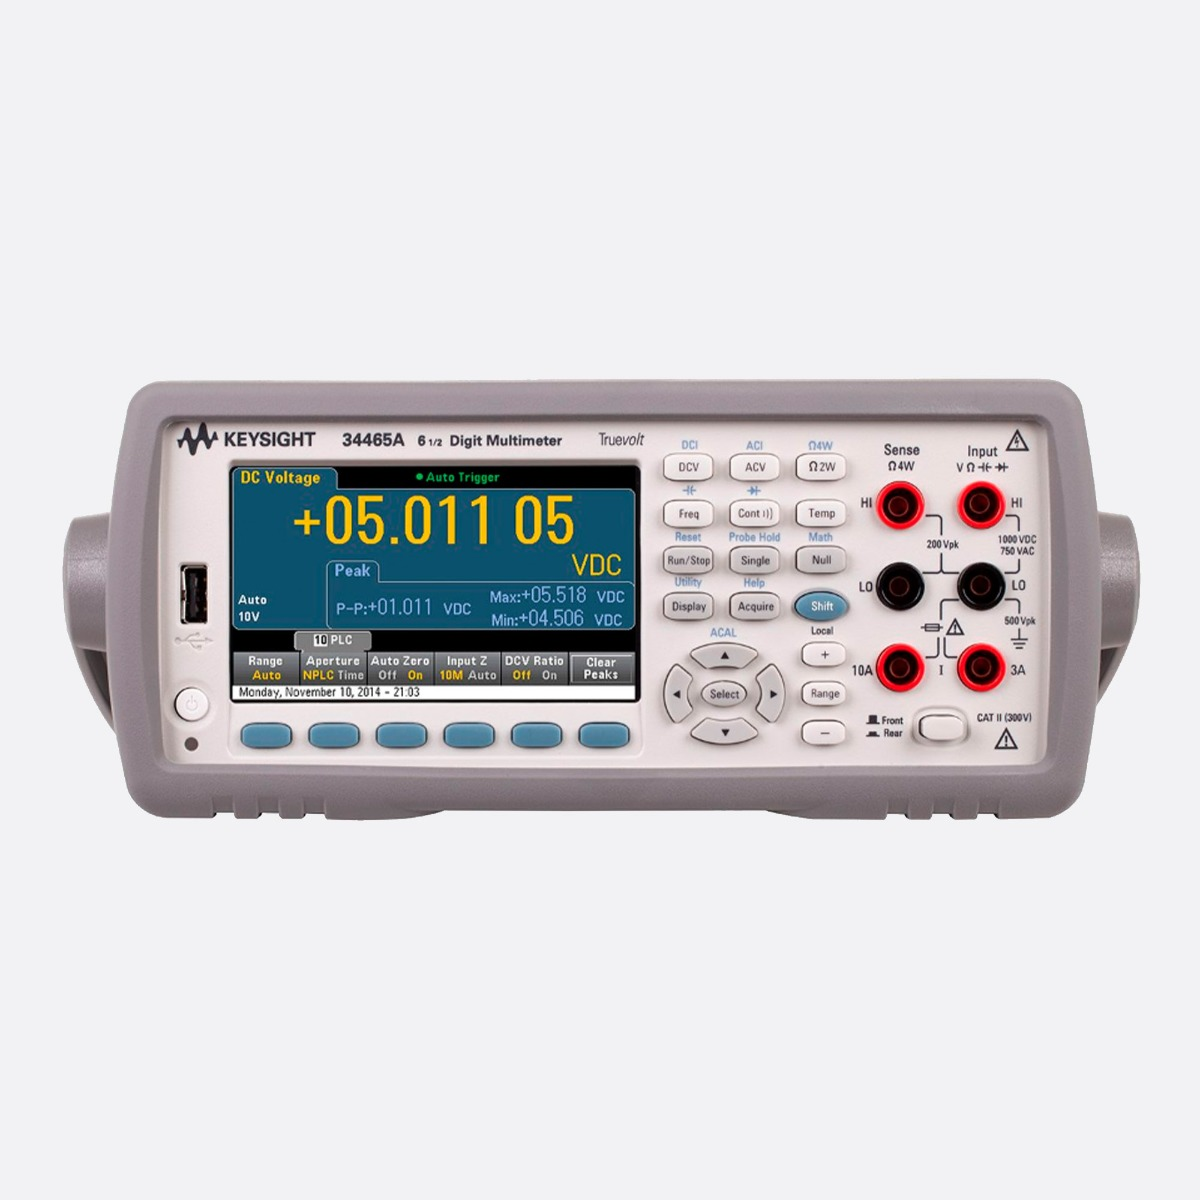 Keysight_34465A_front_Ccontrols